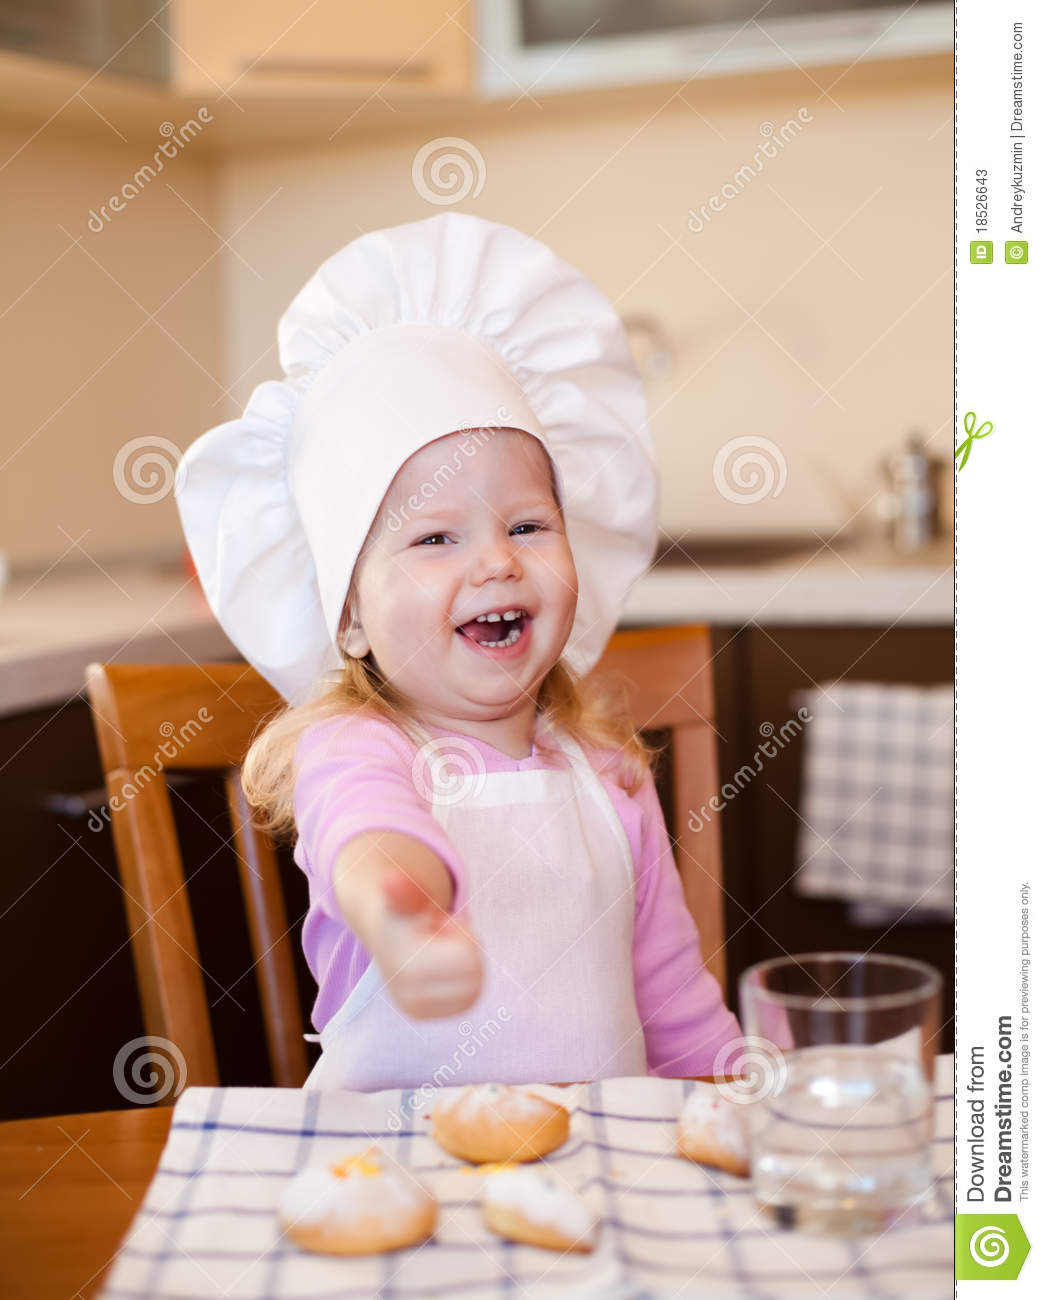 Happy Cook Girl Sitting At Kitchen With Cookies Stock